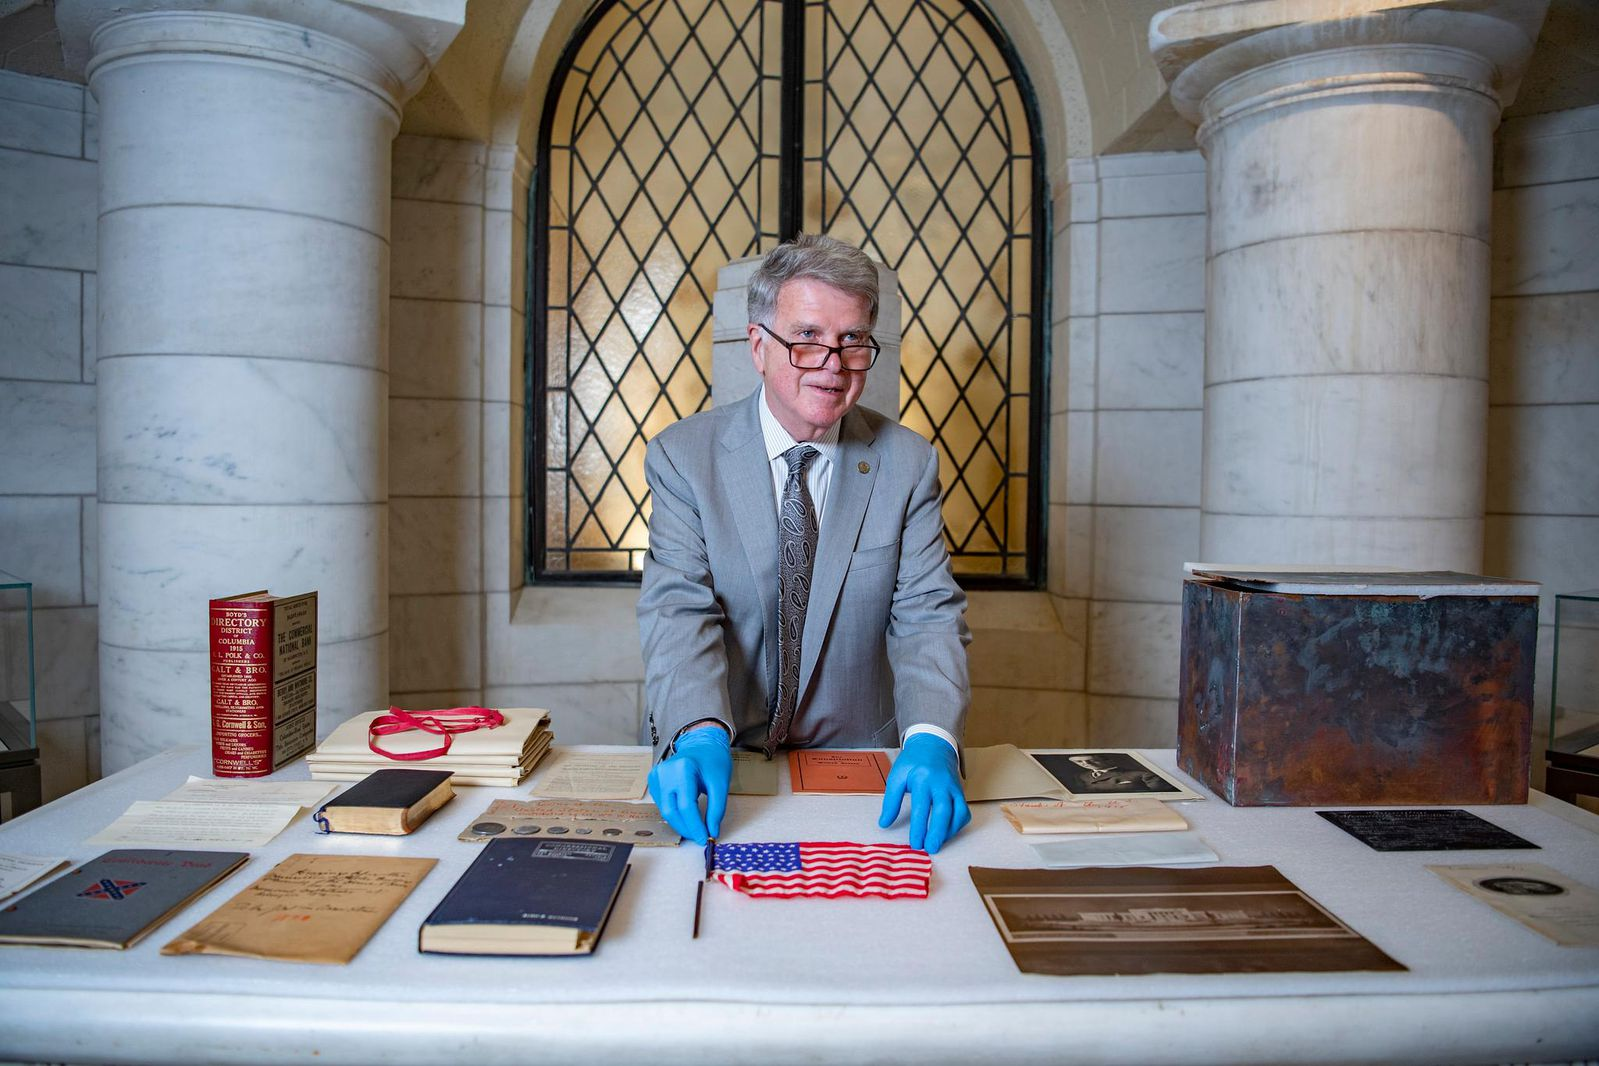 Arlington National Cemetery Opens Its 105-Year-Old Time Capsule